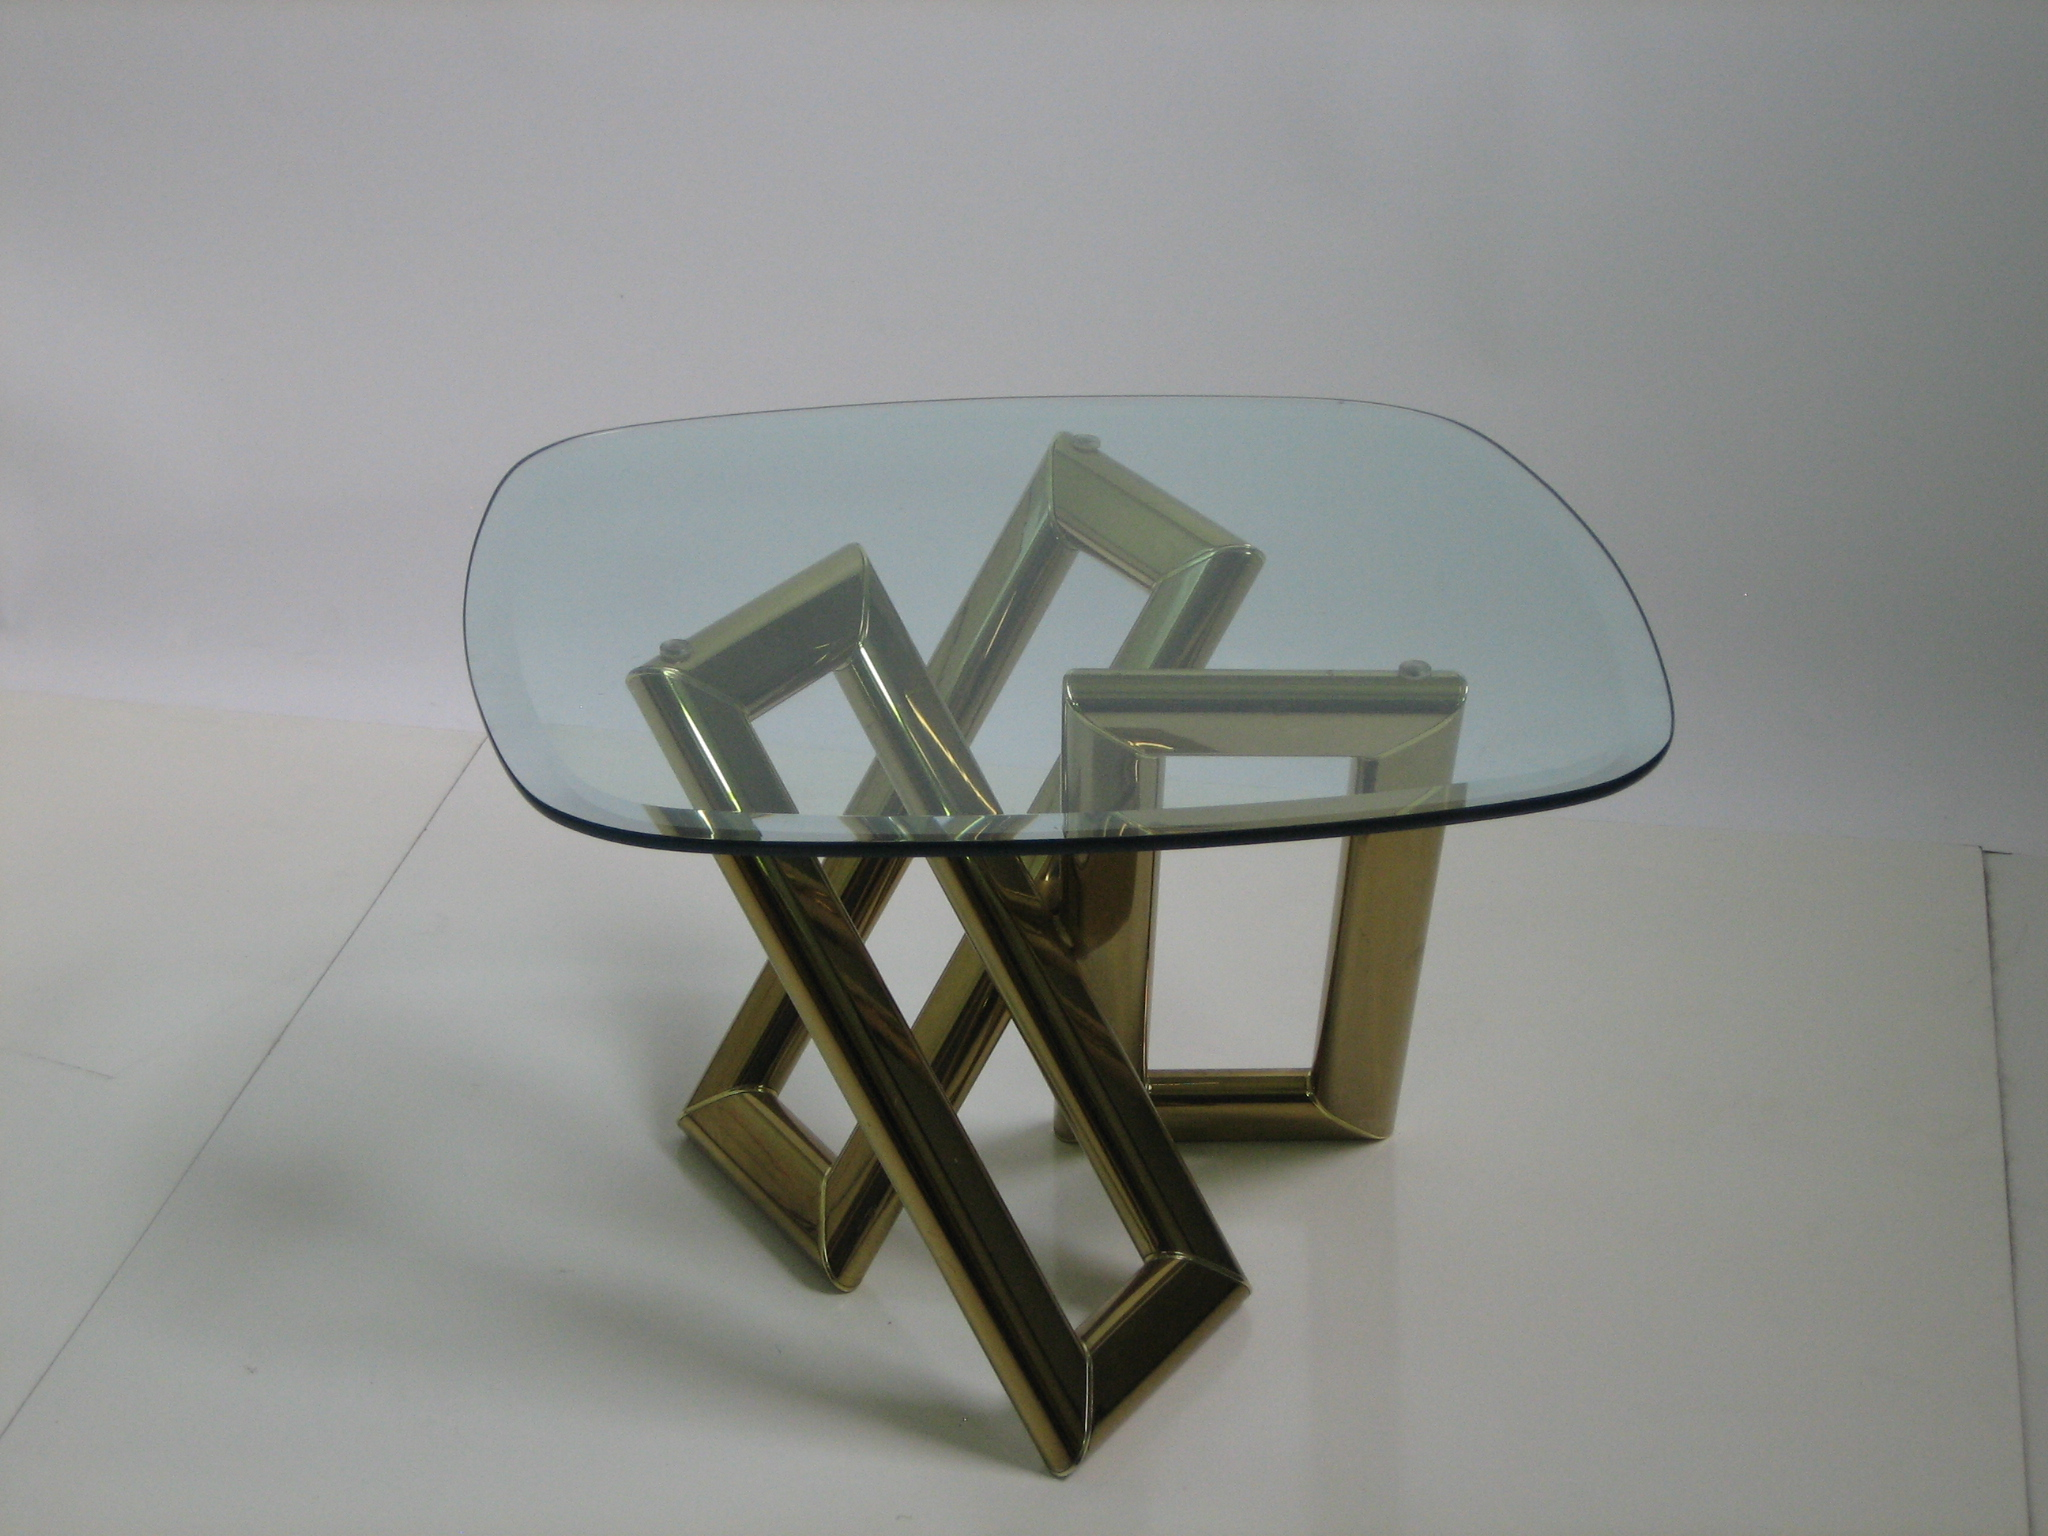 Very Sculptural Metal Glass Top Corner Or Coffee Table, Metal Base With A  Brass Finish